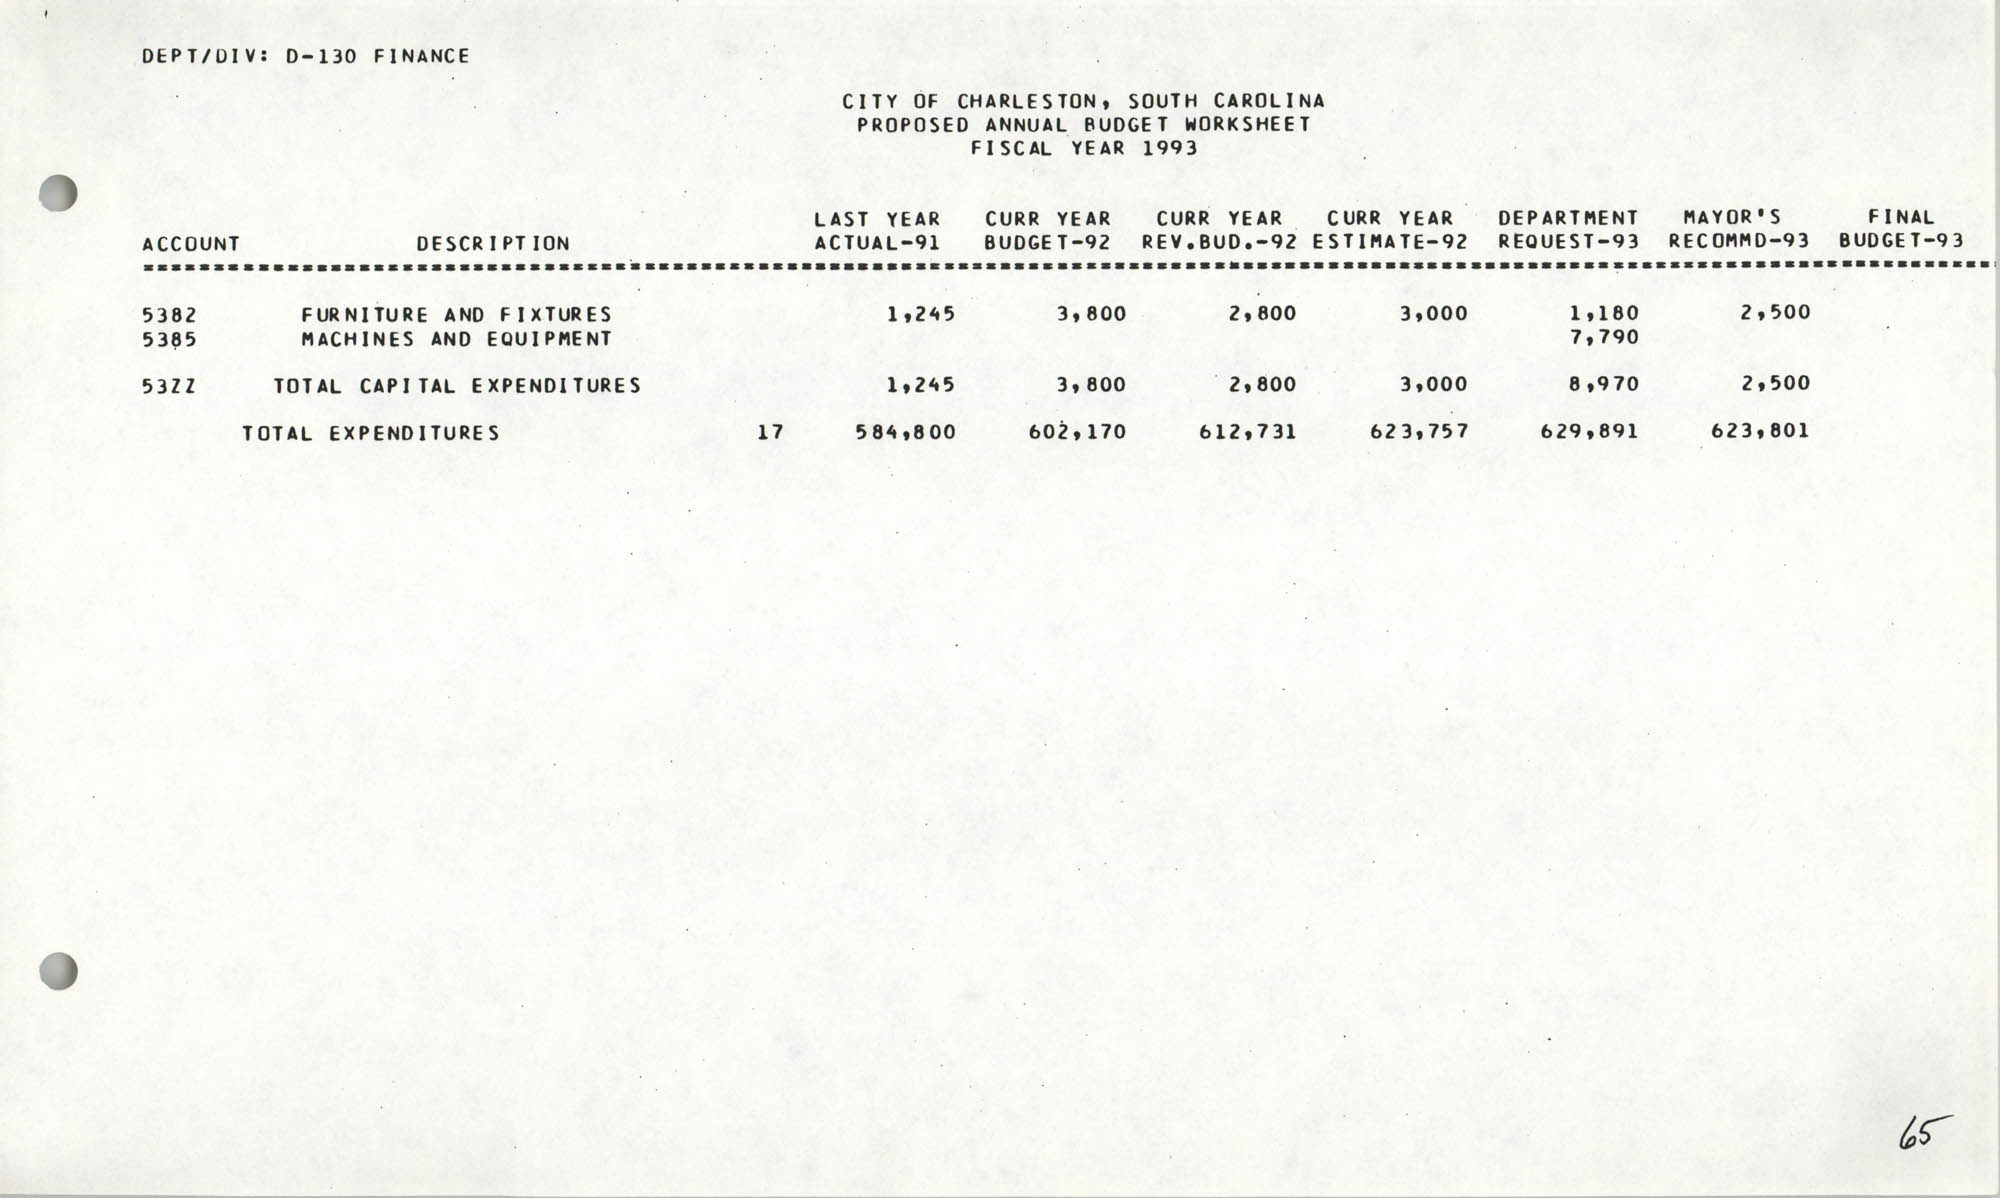 The City Council of Charleston, South Carolina, 1993 Budget, Page 65